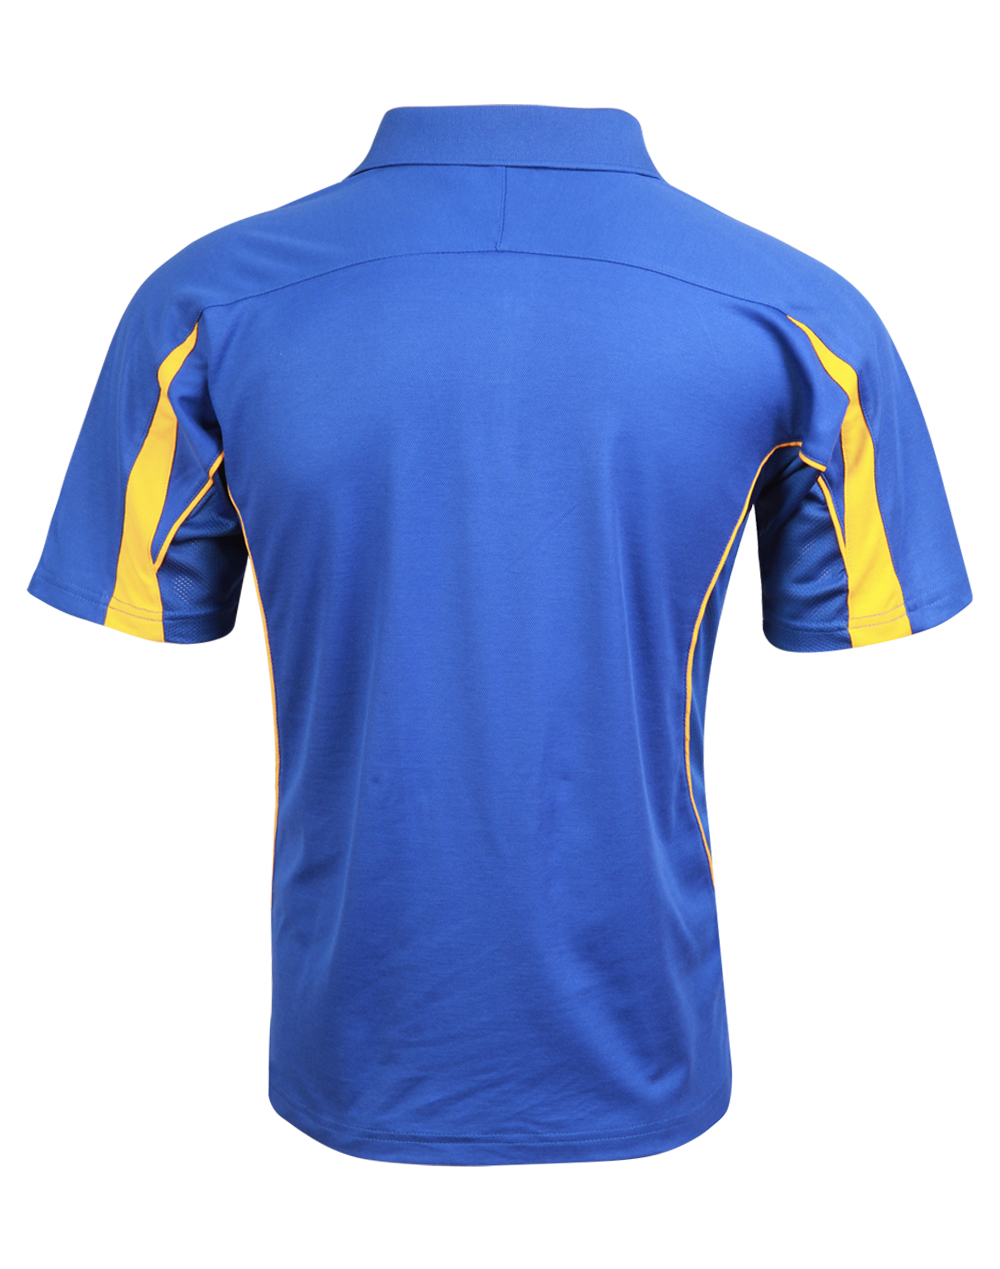 https://s3-ap-southeast-1.amazonaws.com/ws-imgs/POLOSHIRTS/PS53_RoyalGold_back.jpg